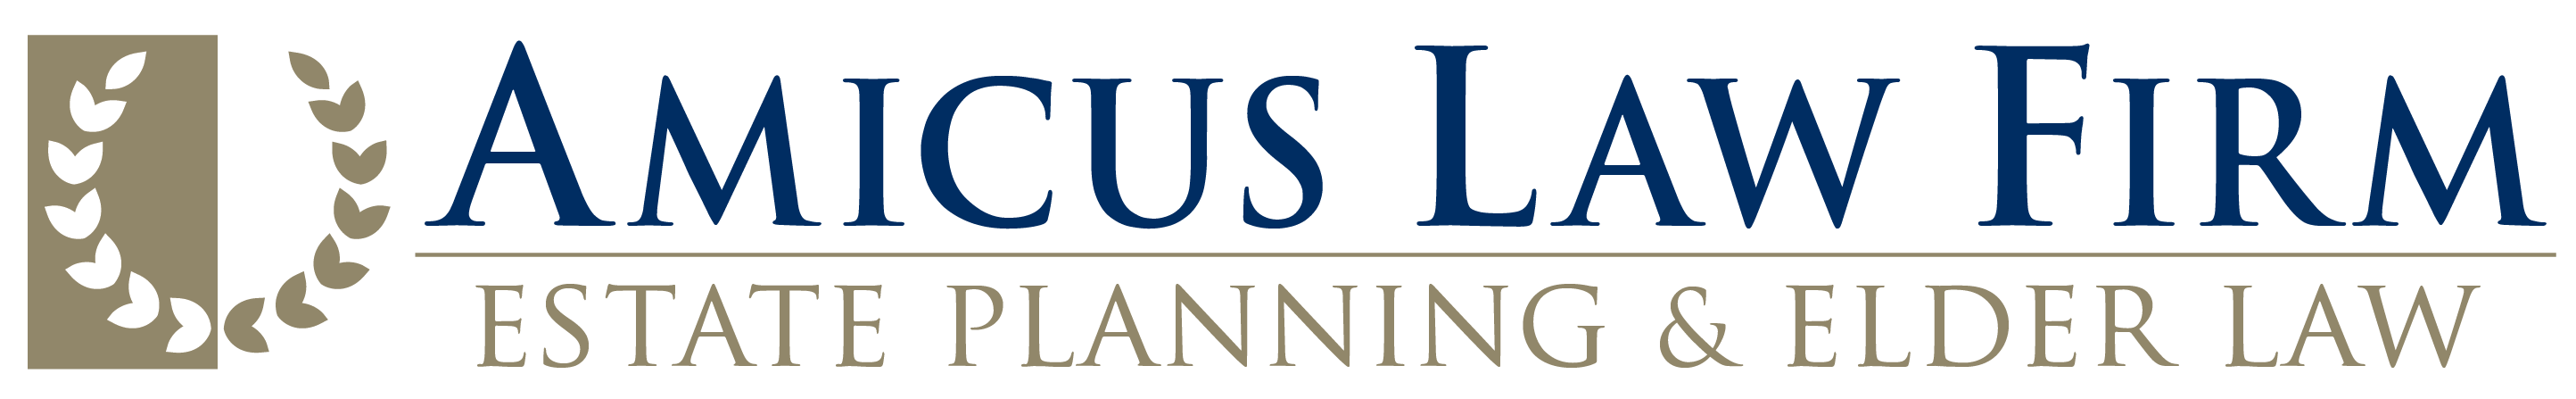 Amicus Law Firm Comprises a Logan Estate Planning Attorney in UT, Helping Clients Plan for the Future